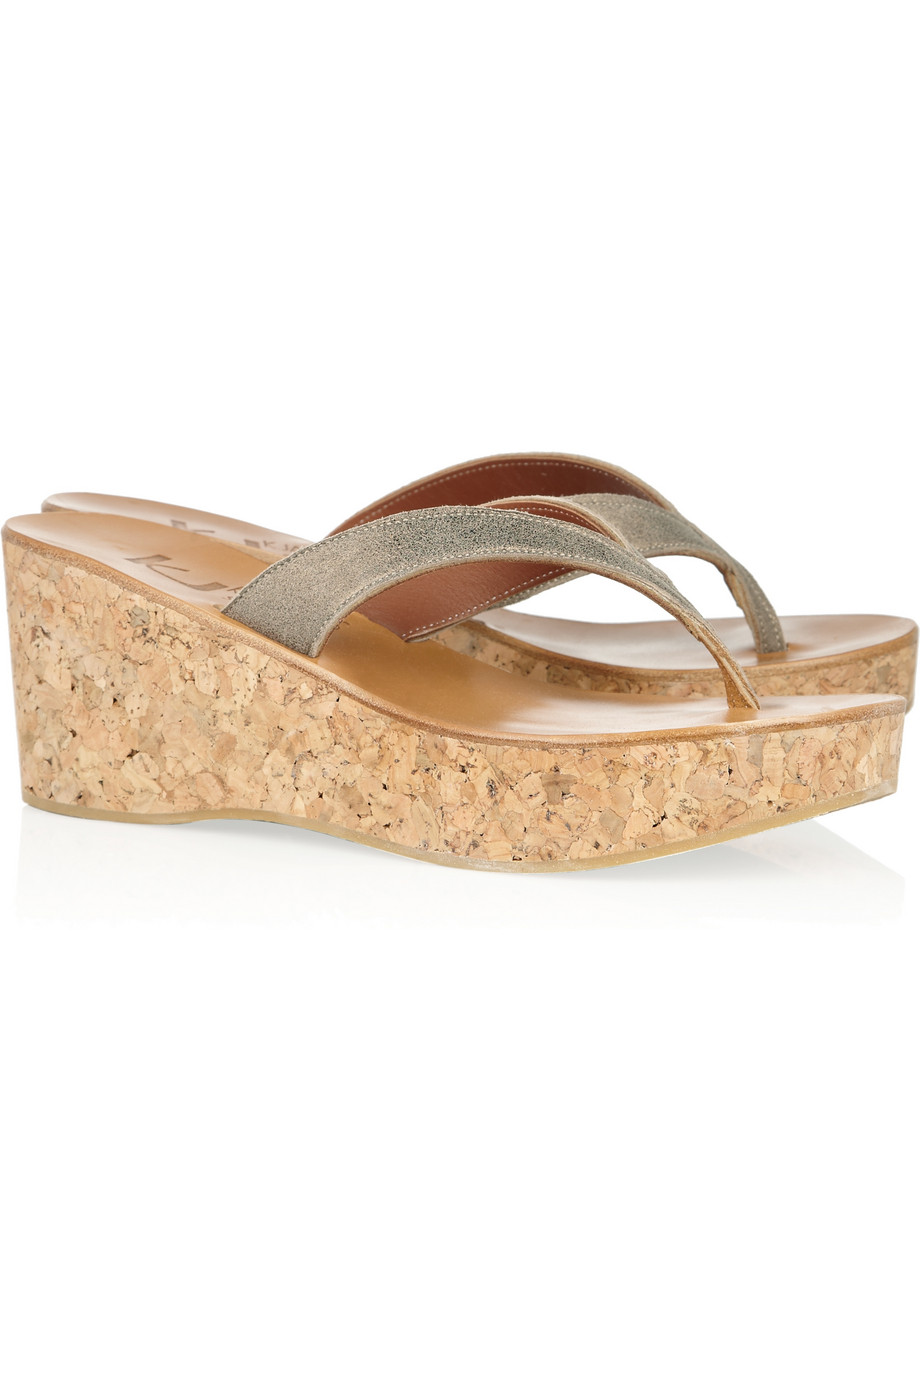 d48a2ca1991e Lyst - K. Jacques Diorite Leather and Cork Wedge Sandals in Metallic